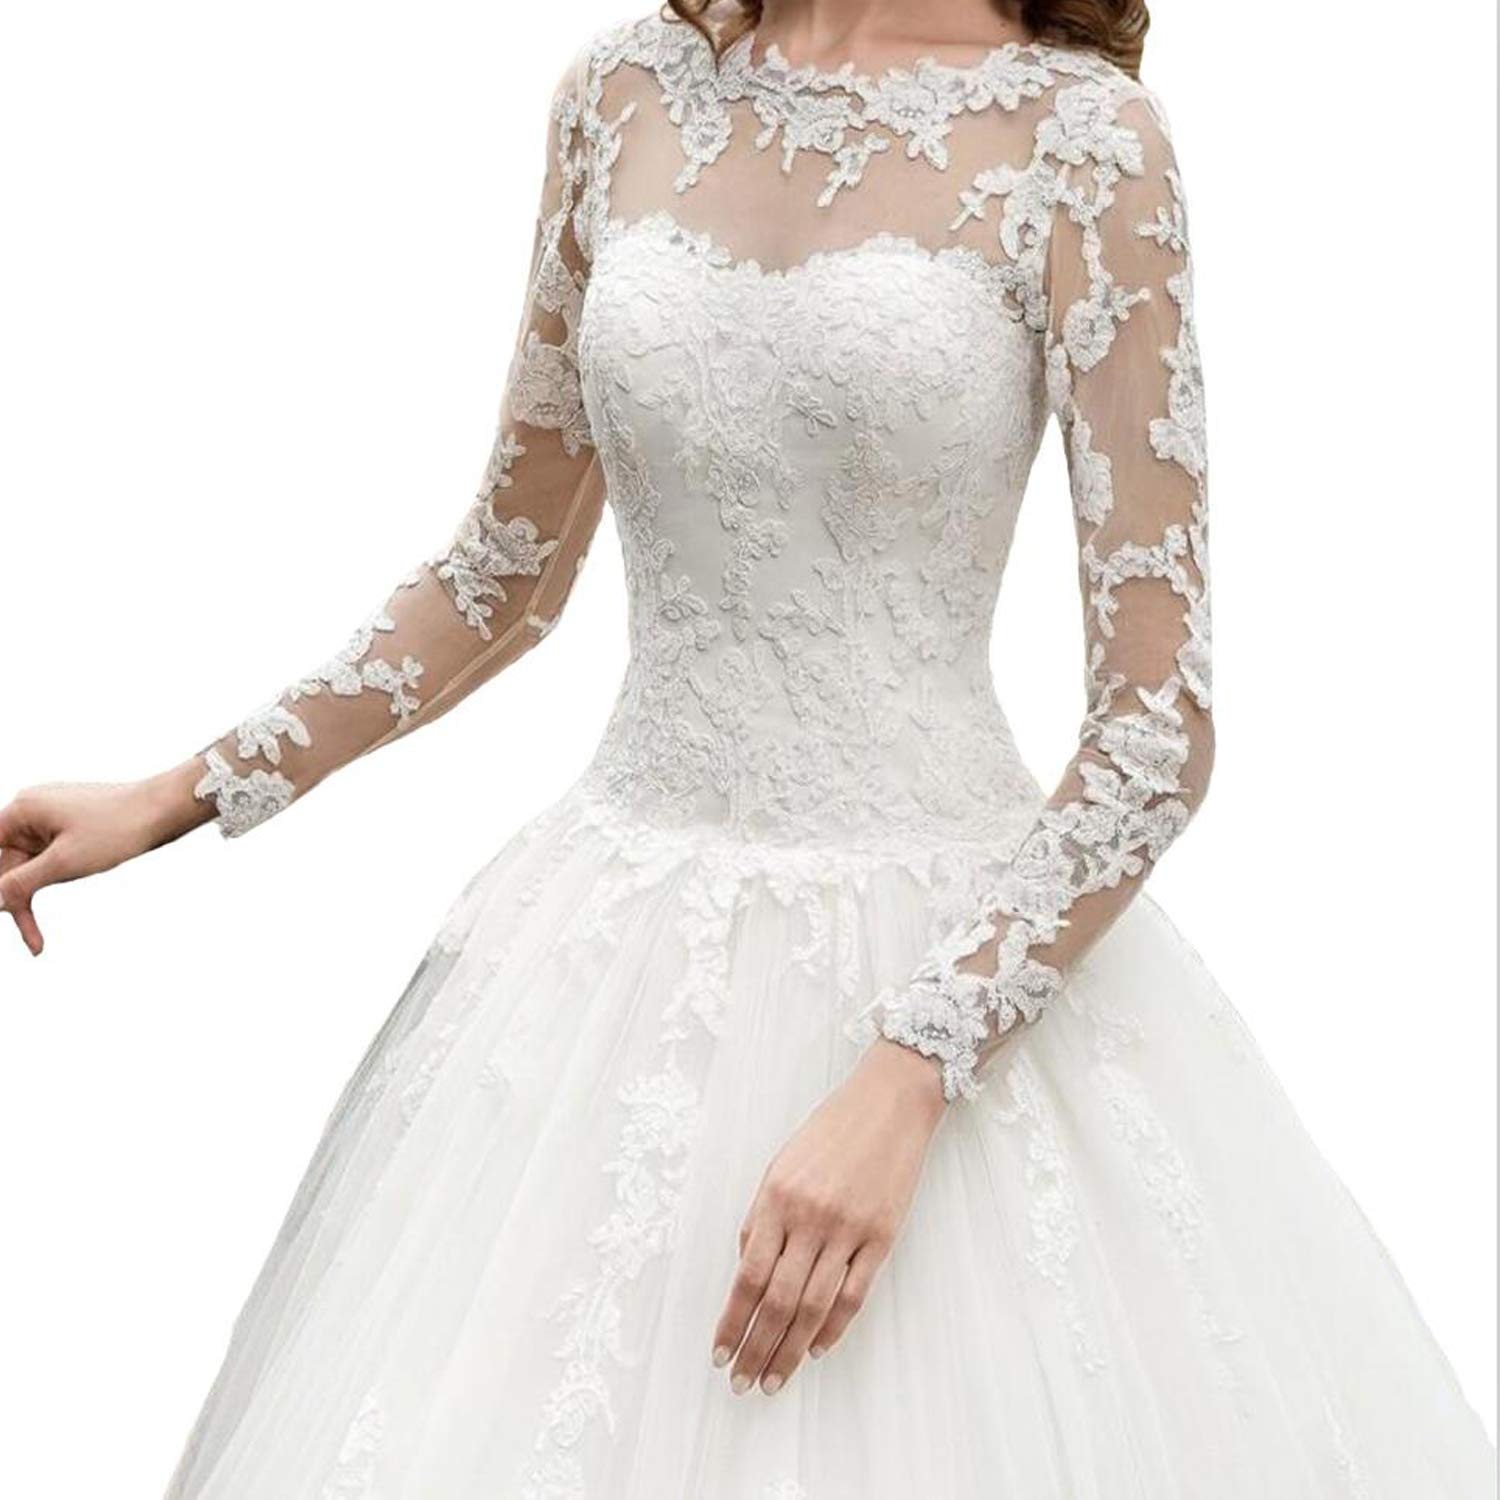 OWMAN New Womens Long Sleeves Scoop Lace Ball Gown Wedding Dress Bridal Gowns FLLH059